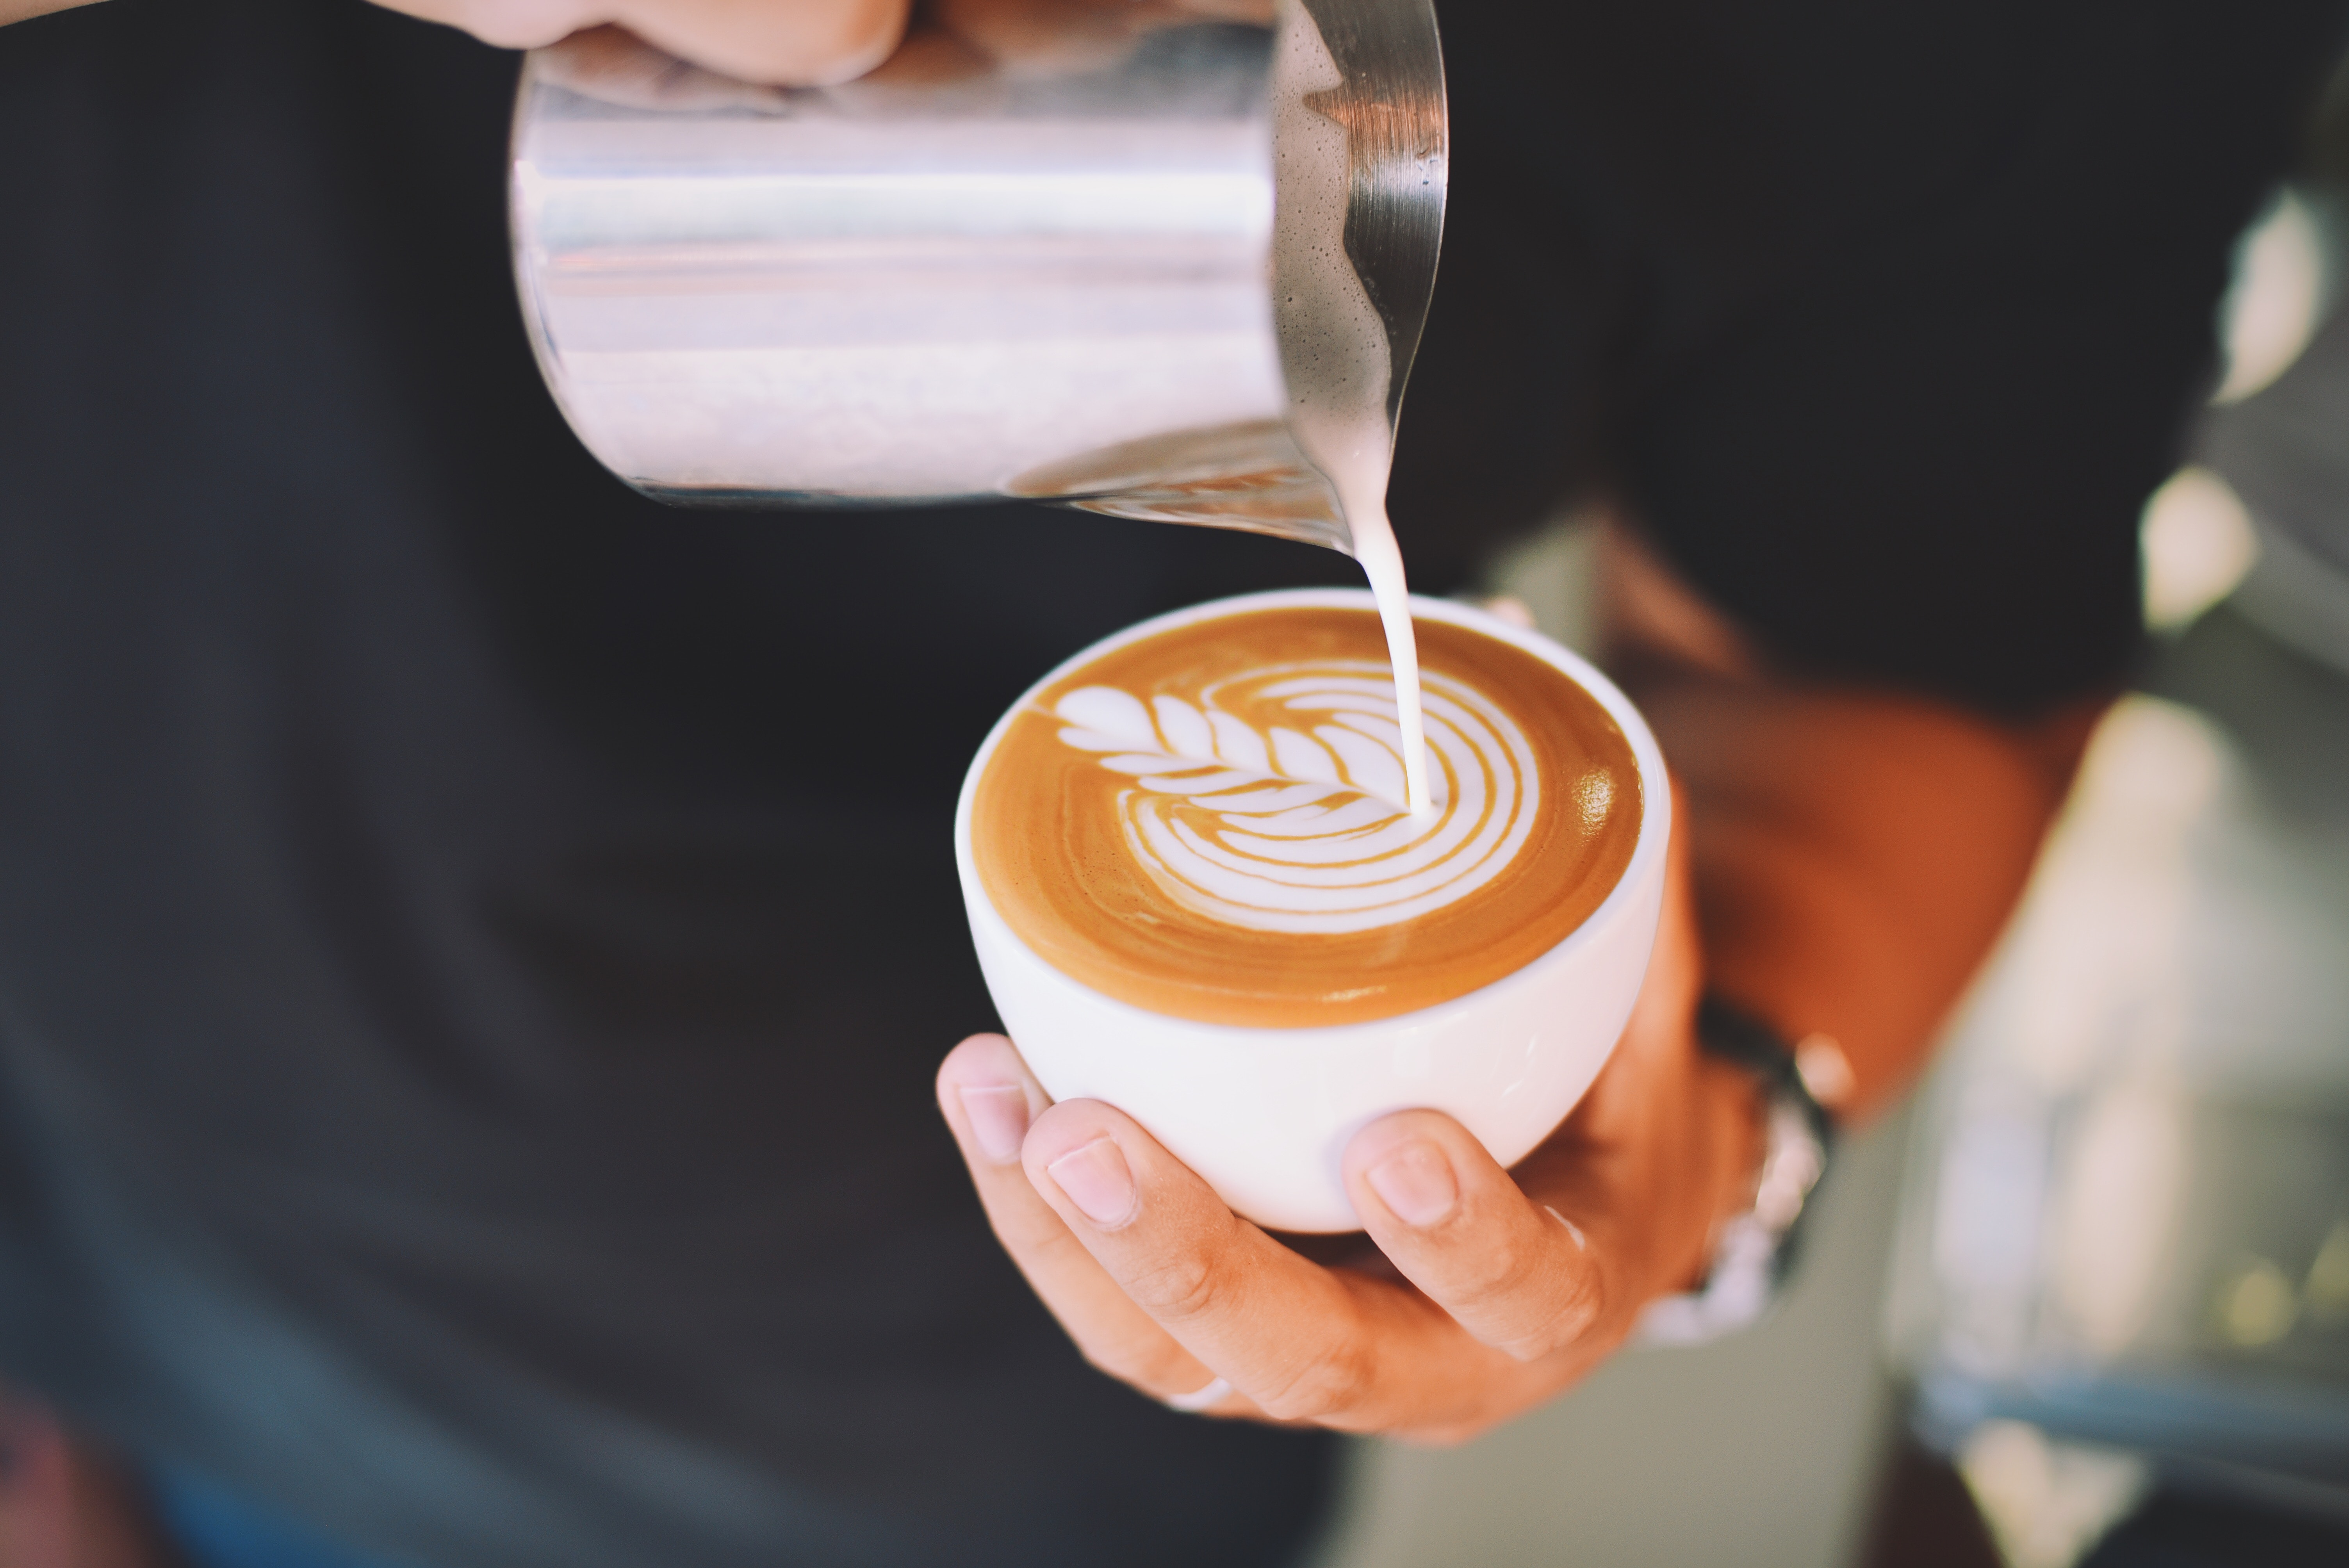 Close-up of hand holding cappuccino photo